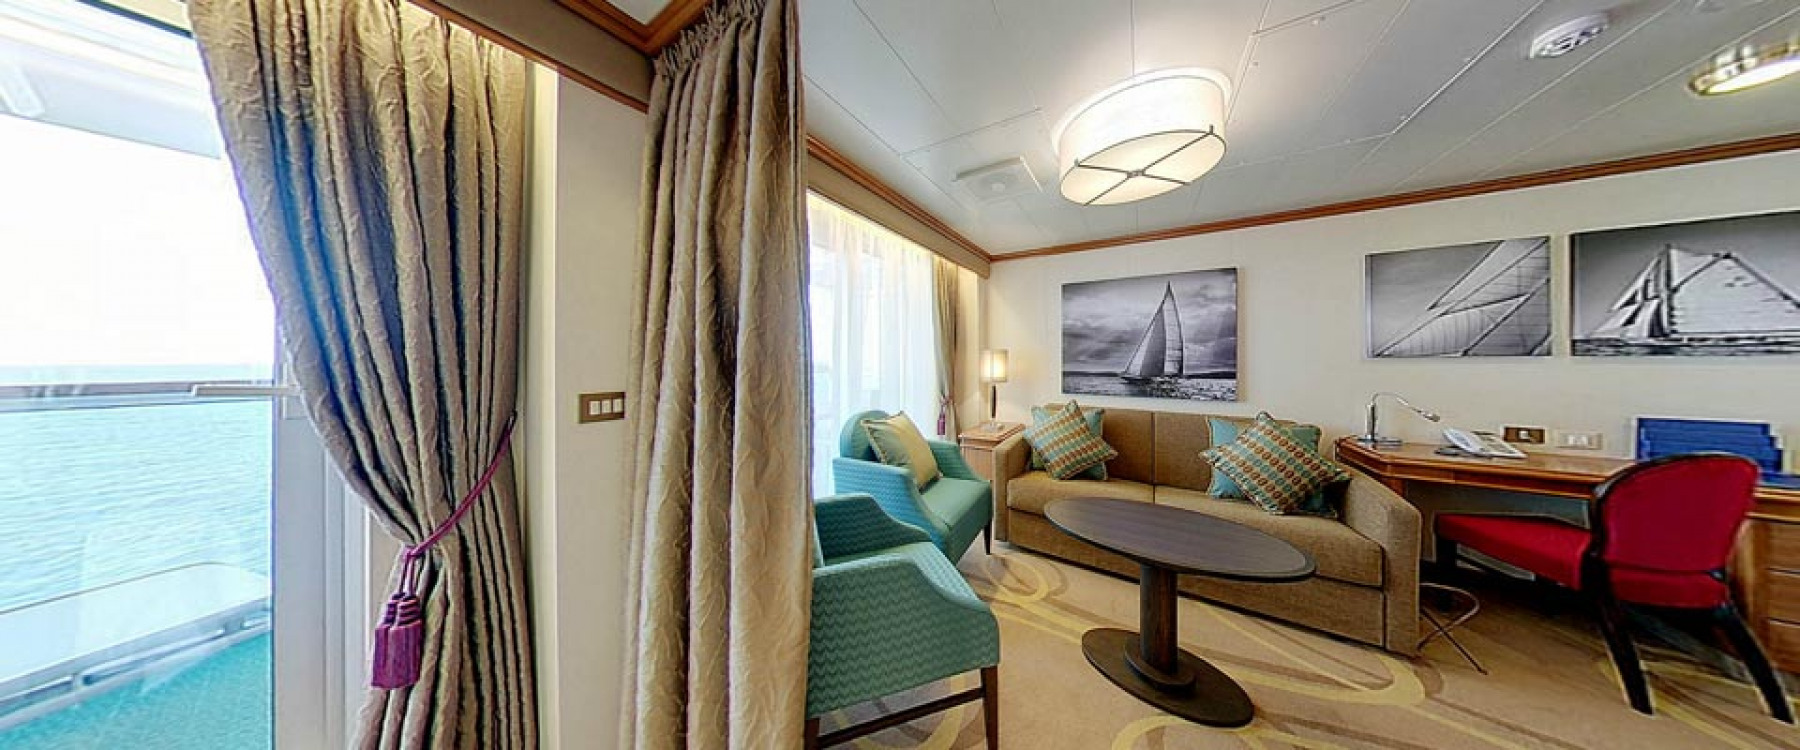 P&O Cruises Azura accomm Penthouse Suite.jpg